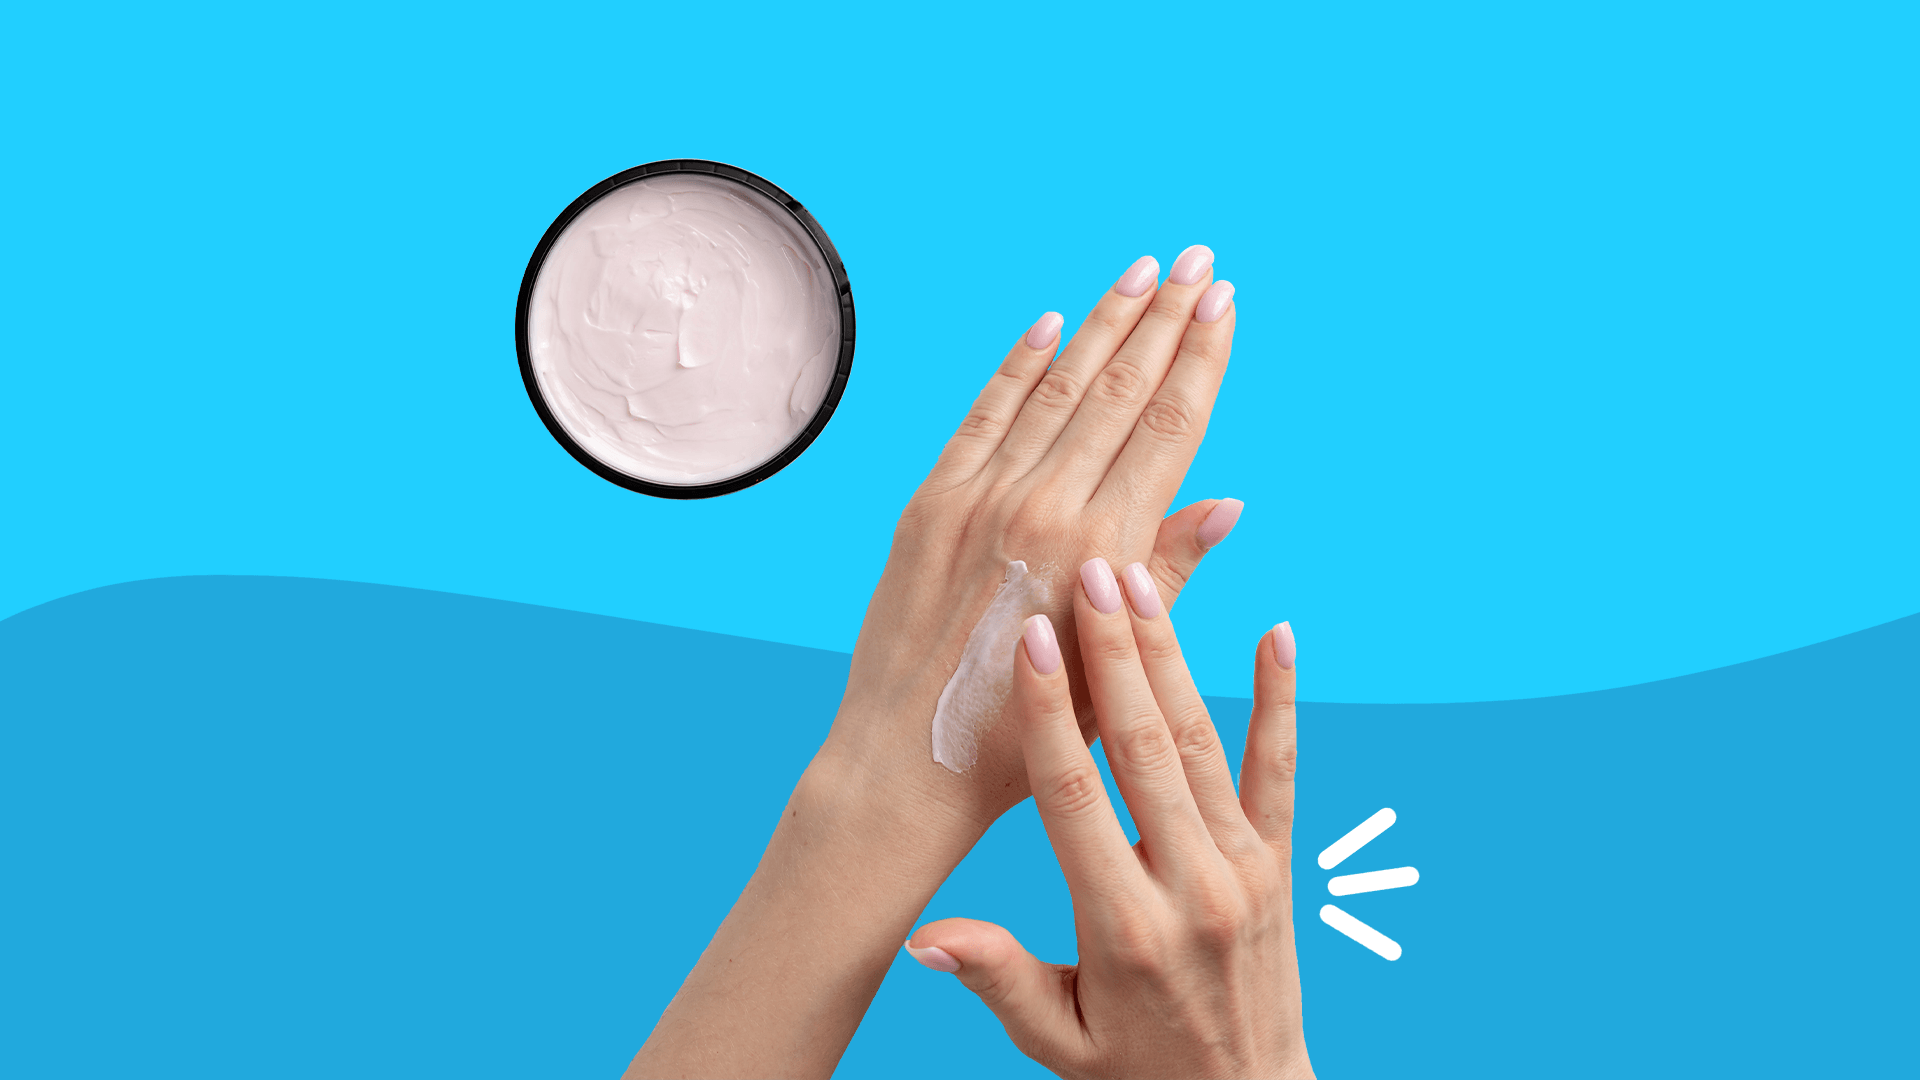 How to treat contact dermatitis